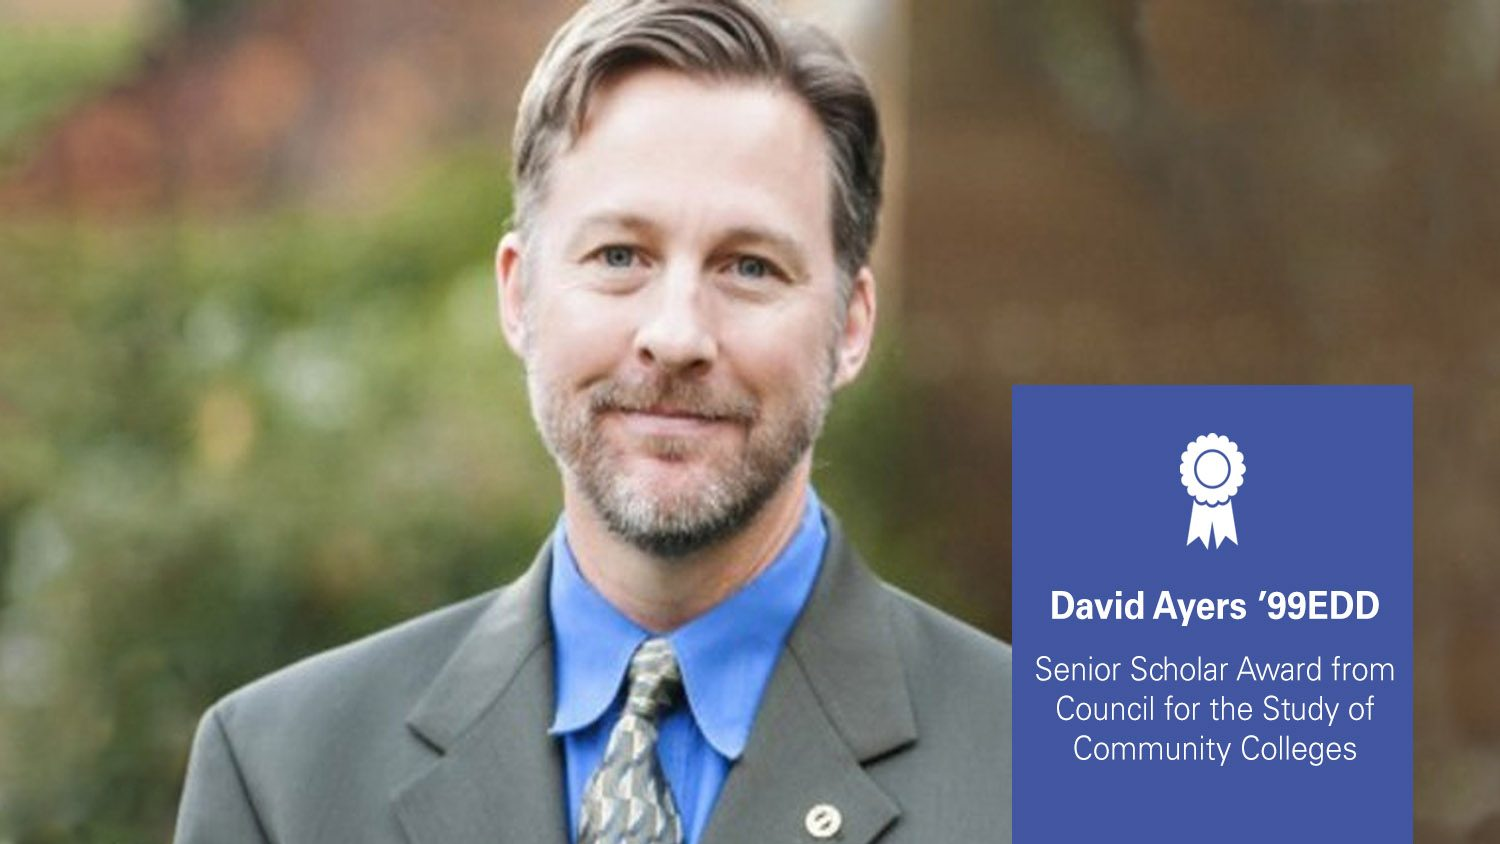 David Ayers won the Senior Scholar Award from Council for the Study of Community Colleges